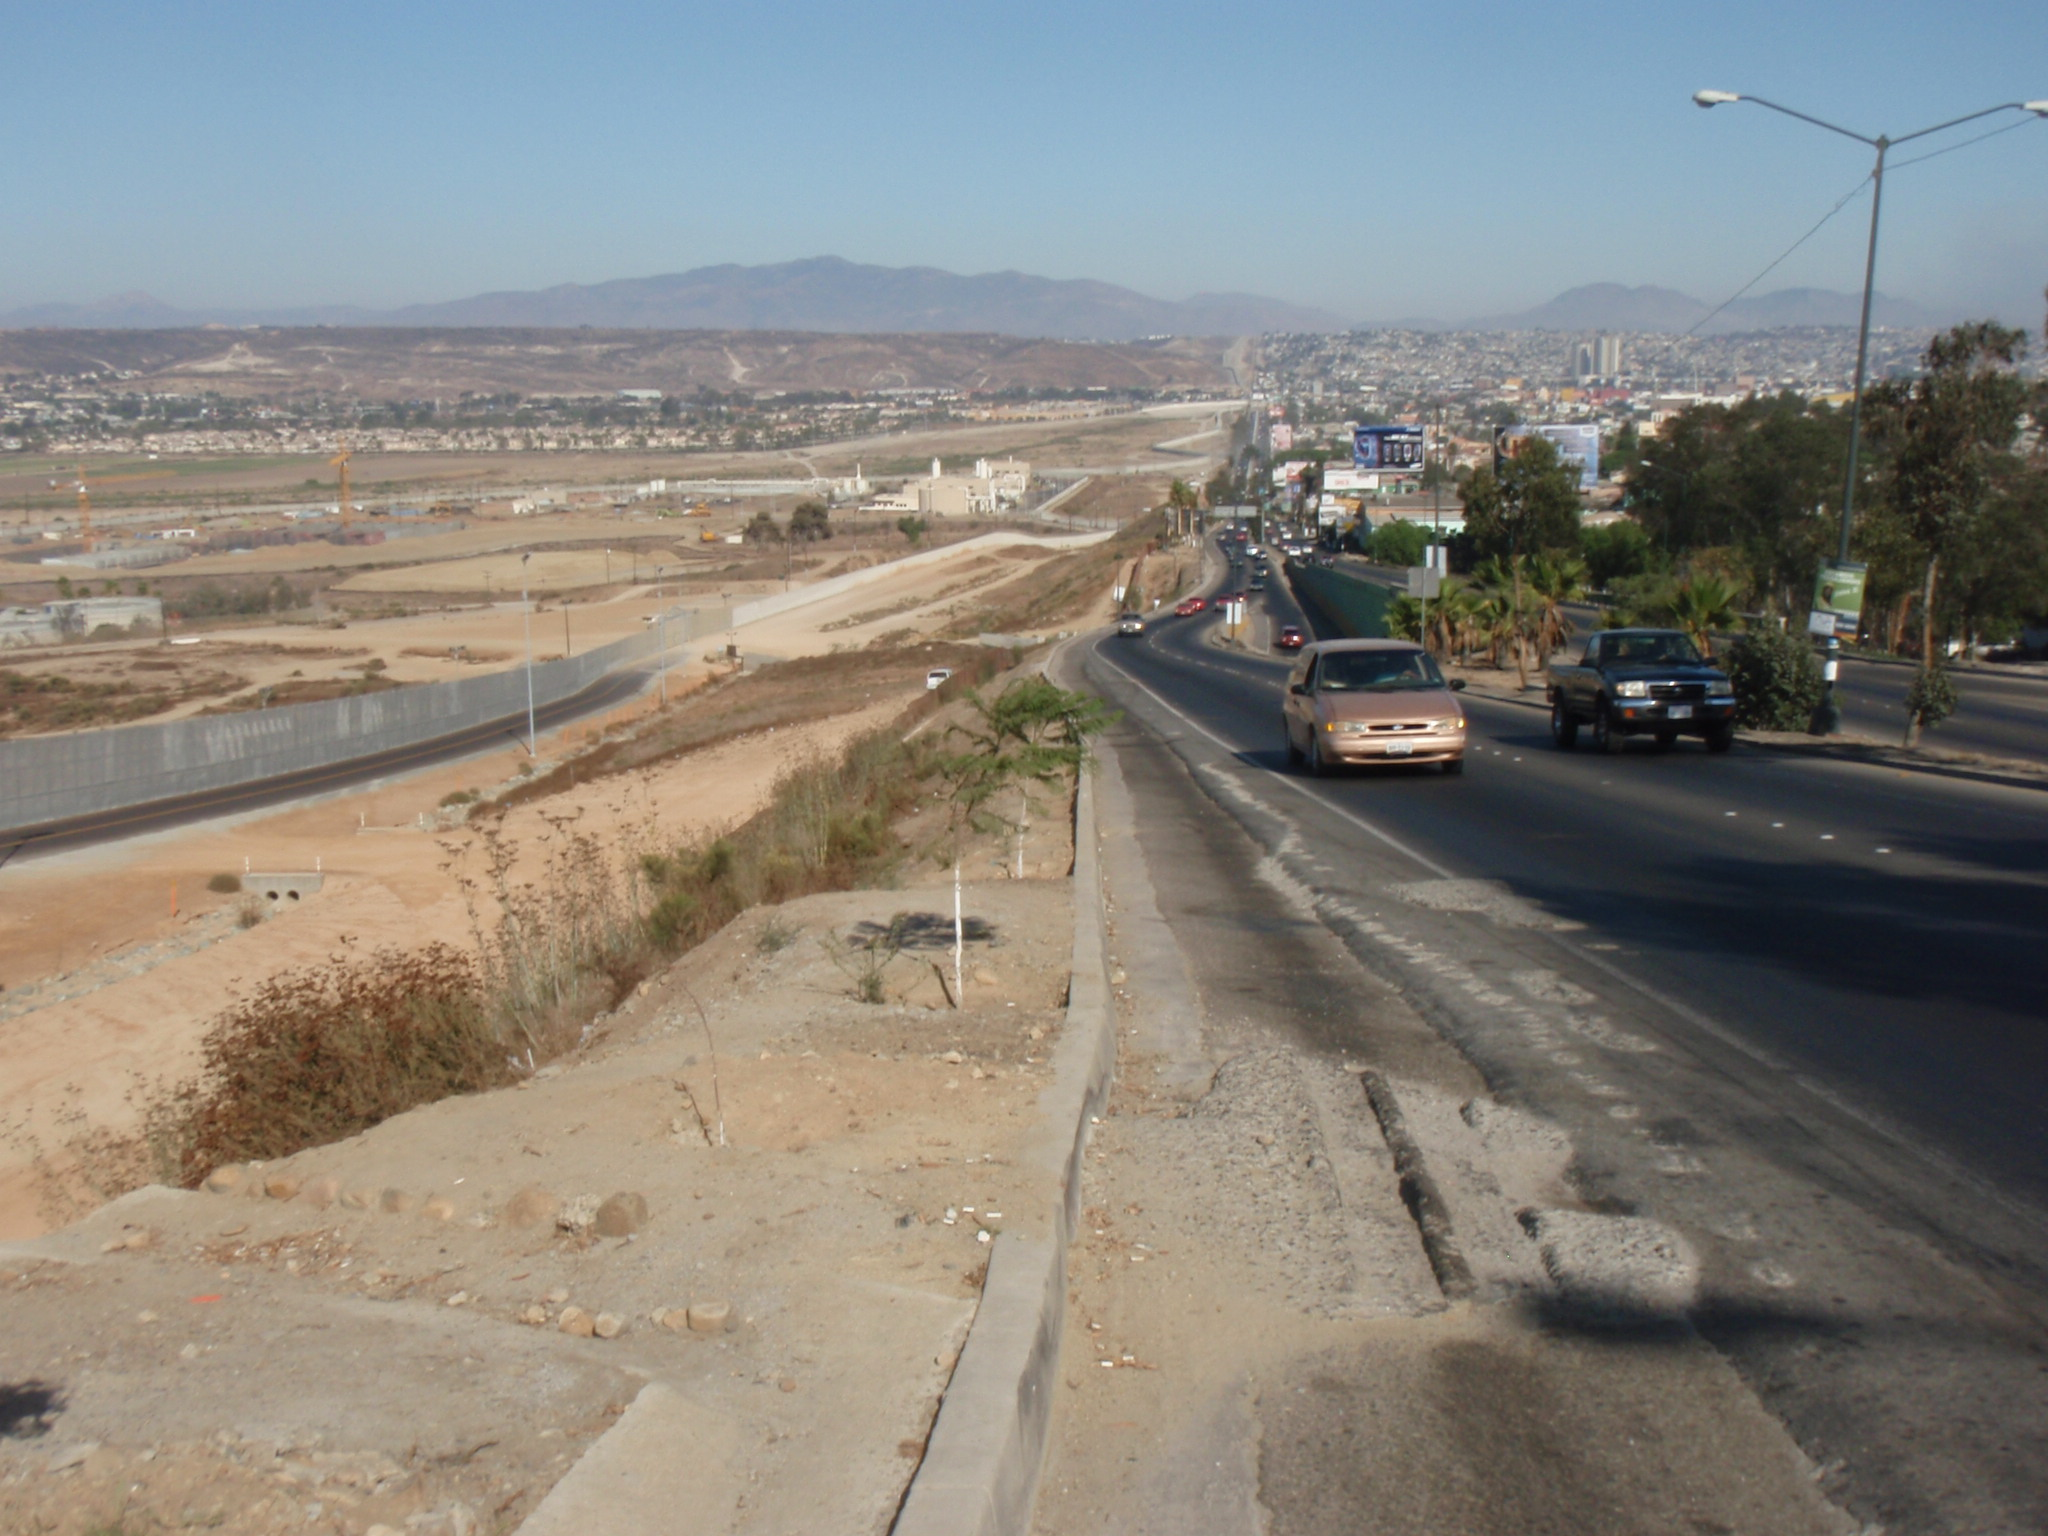 View of border fence in Tijuana (US to the left, Mexico to the right)